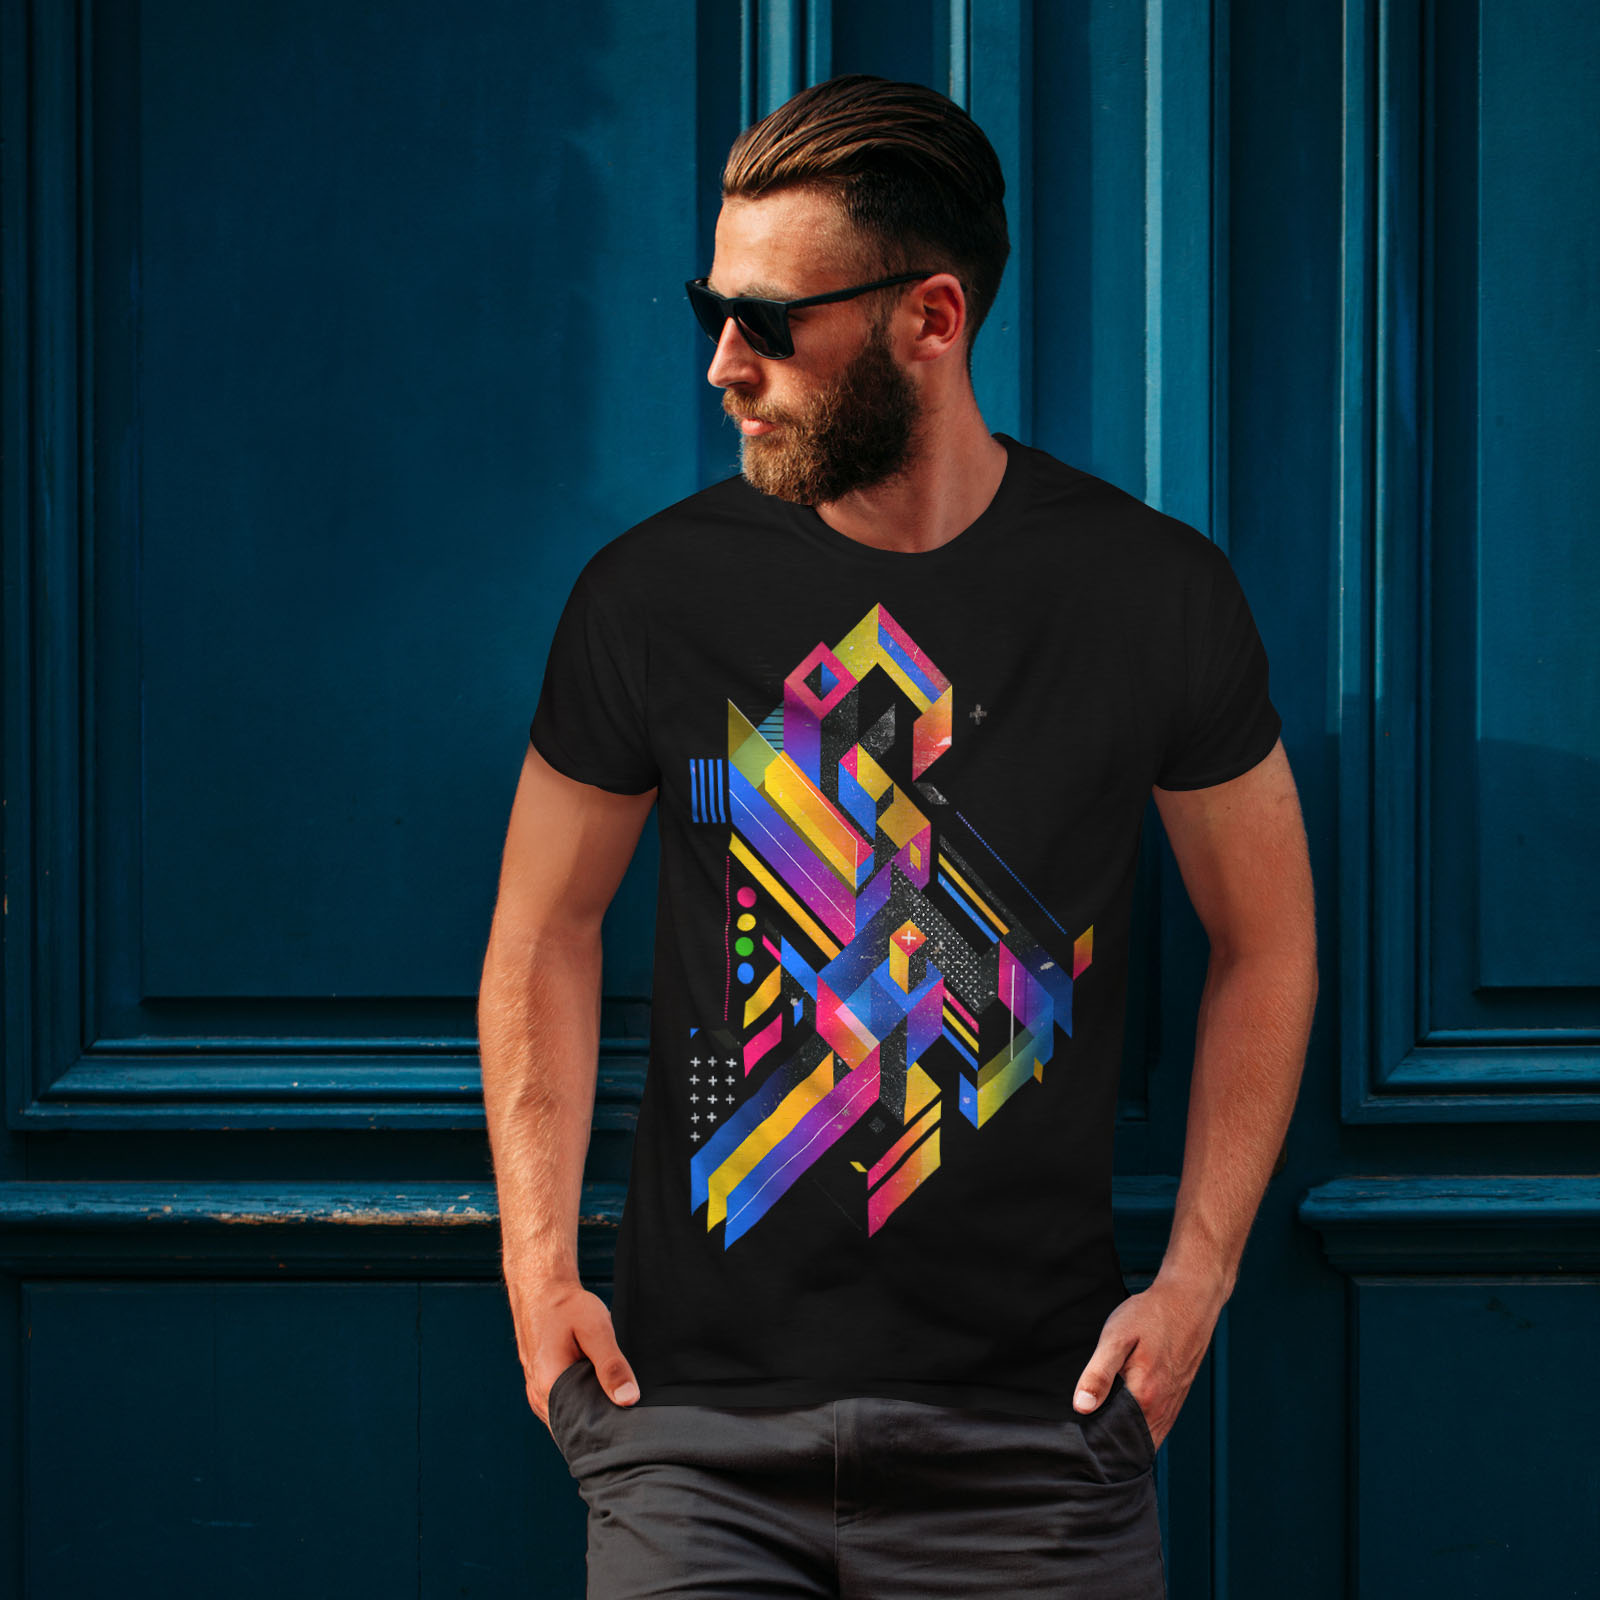 Wellcoda-Abstract-Maze-T-shirt-homme-Labyrinthe-conception-graphique-imprime-Tee miniature 4